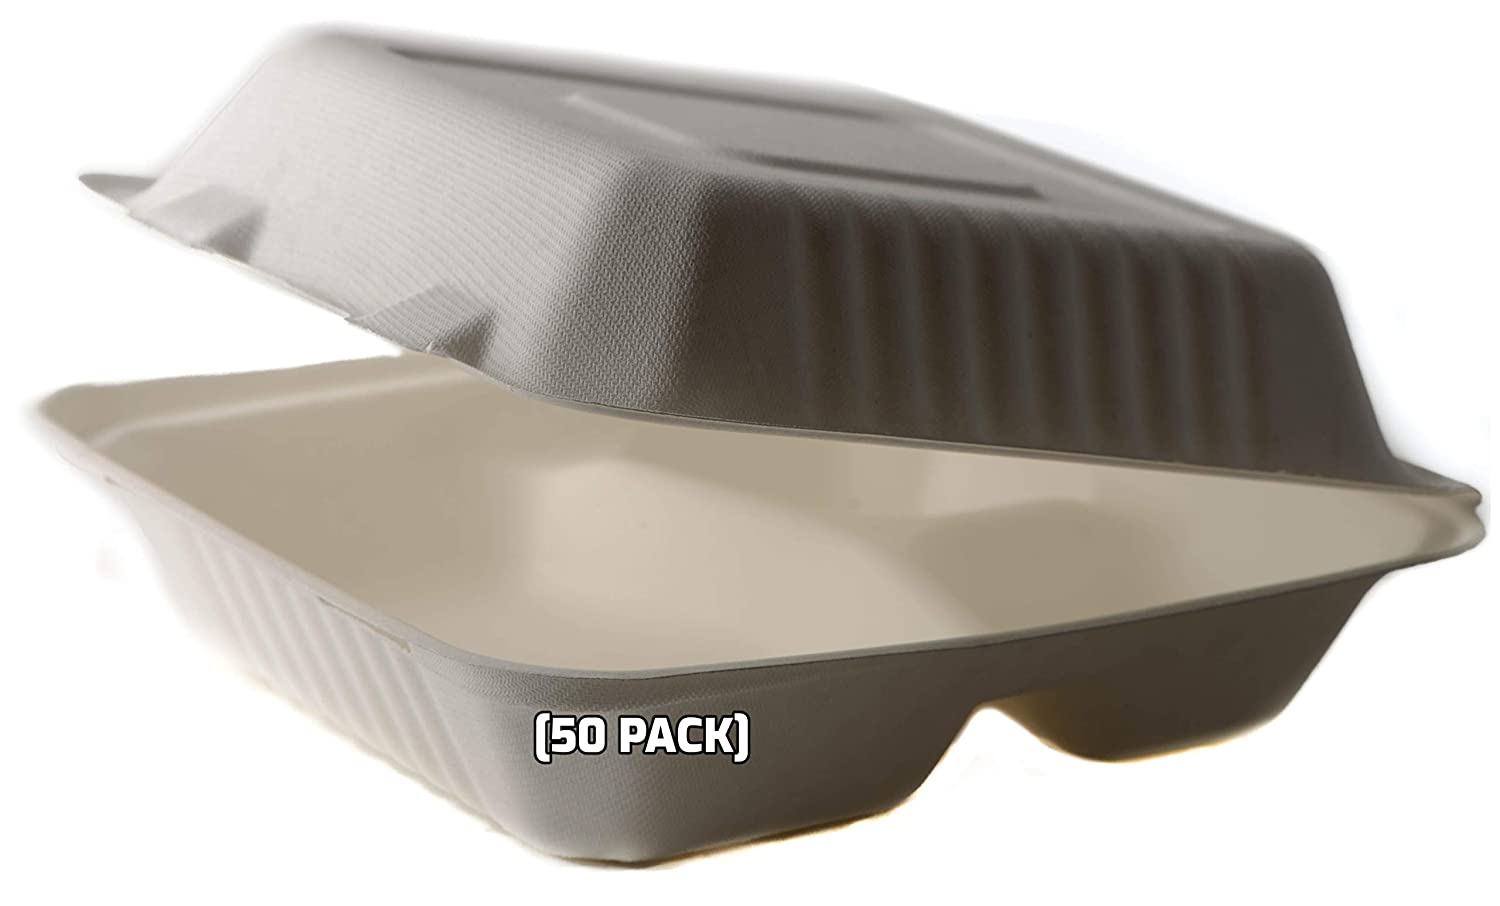 [50 Pack] 8 Inch 3-Compartment Compostable Hinged Take Out Food